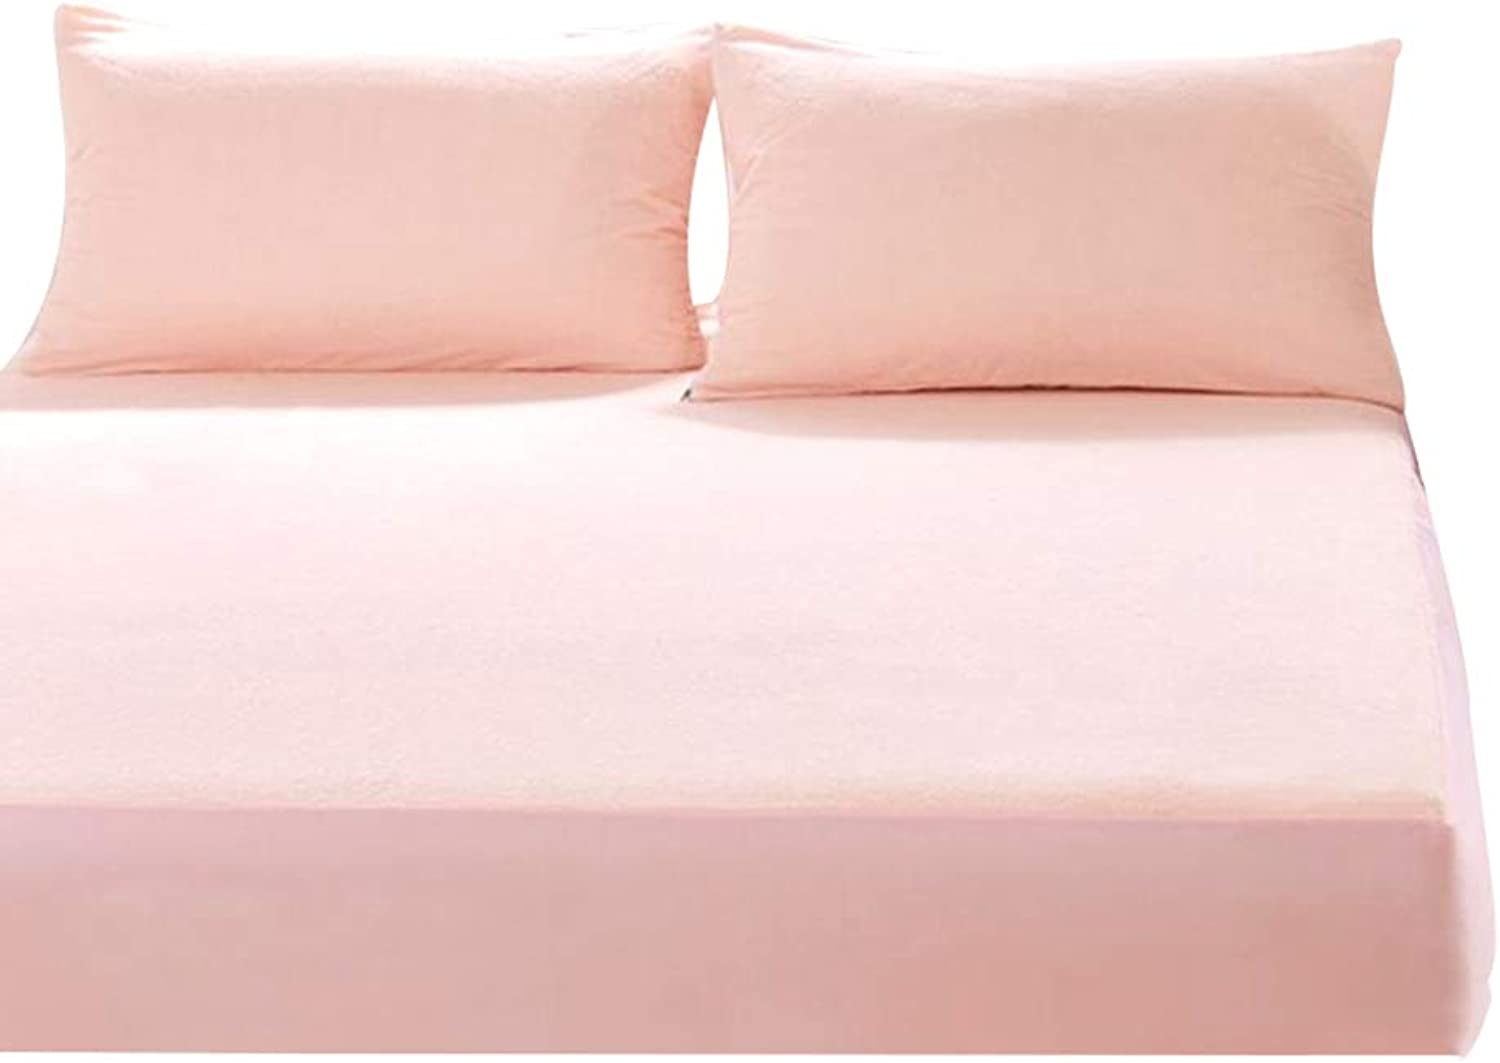 ZHAOHUI Mattress Predector Cotton Waterproof Breathable Hypoallergenic Set of 3 Anti-mite Soft Skin-Friendly, 3 colors, 2 Sizes (color   Pink-120 x 200cm)